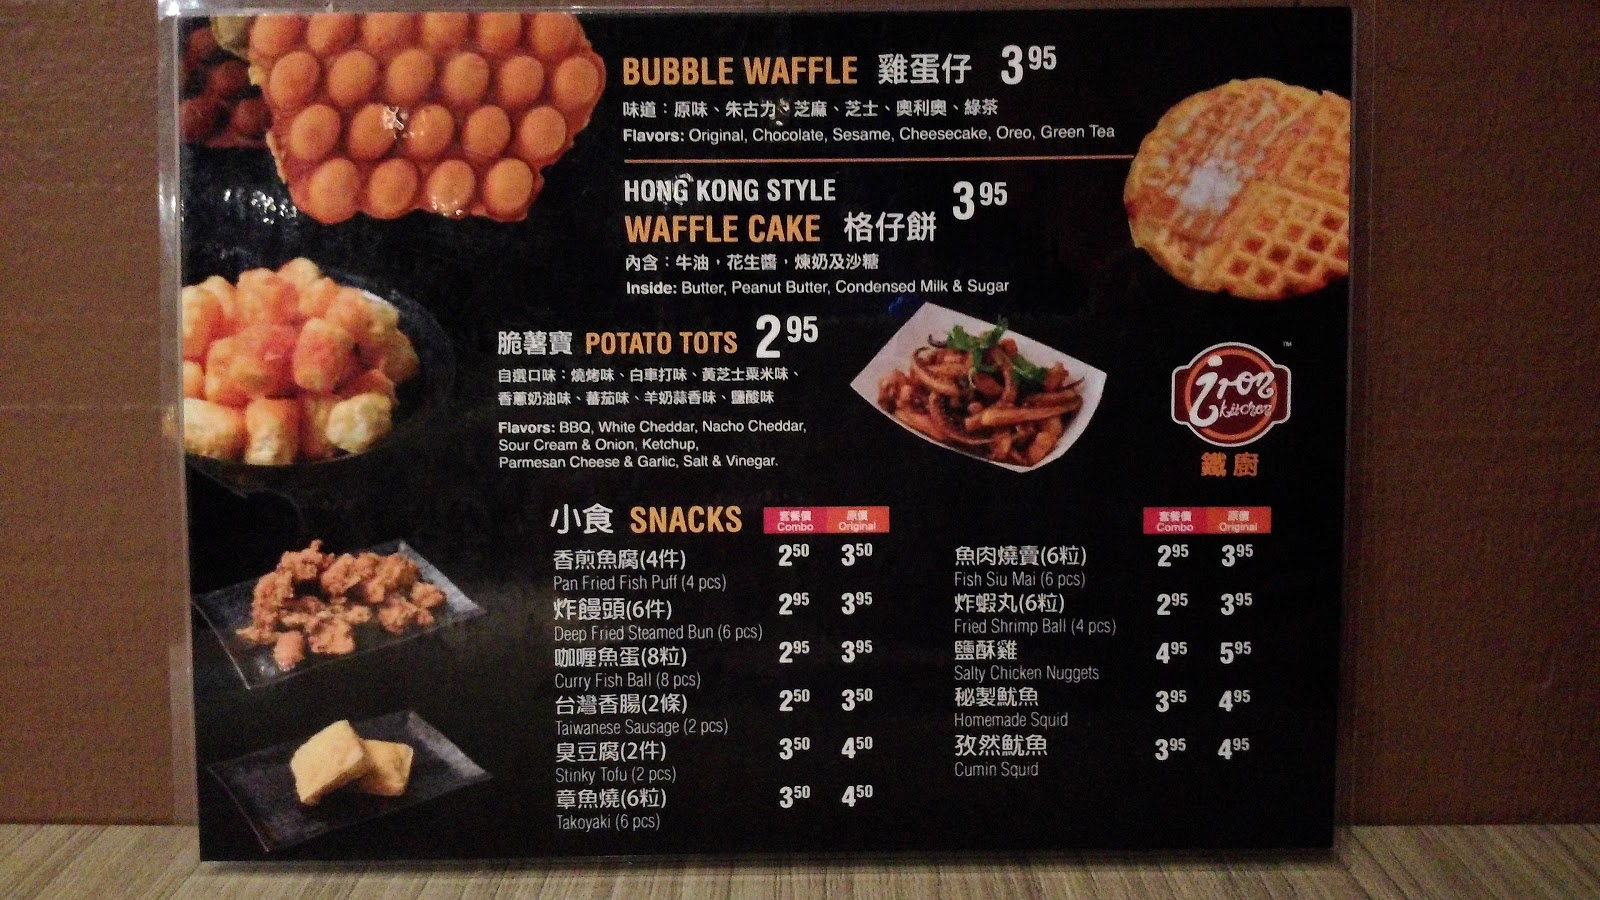 Pre sale 52 off hainanese chicken house 6 orders waffle stamp card - Just Like Other Bubble Waffle Cafe Restaurants Stamp Cards Are Offered And Used Here We Were Told That We Can Redeem The Card At Any Of Their Locations